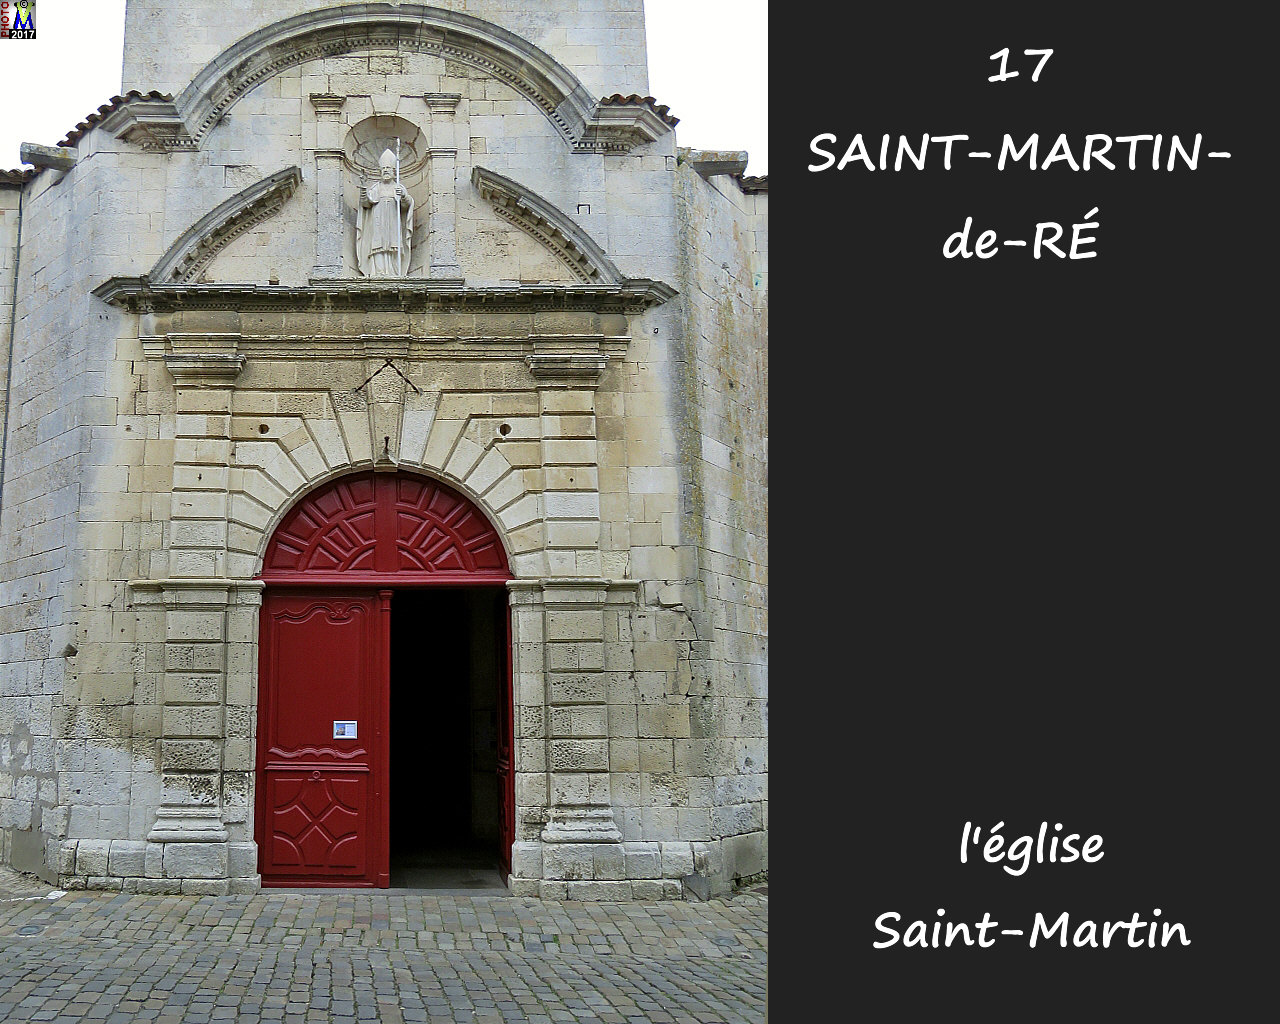 17StMARTIN-RE_eglise_1014.jpg